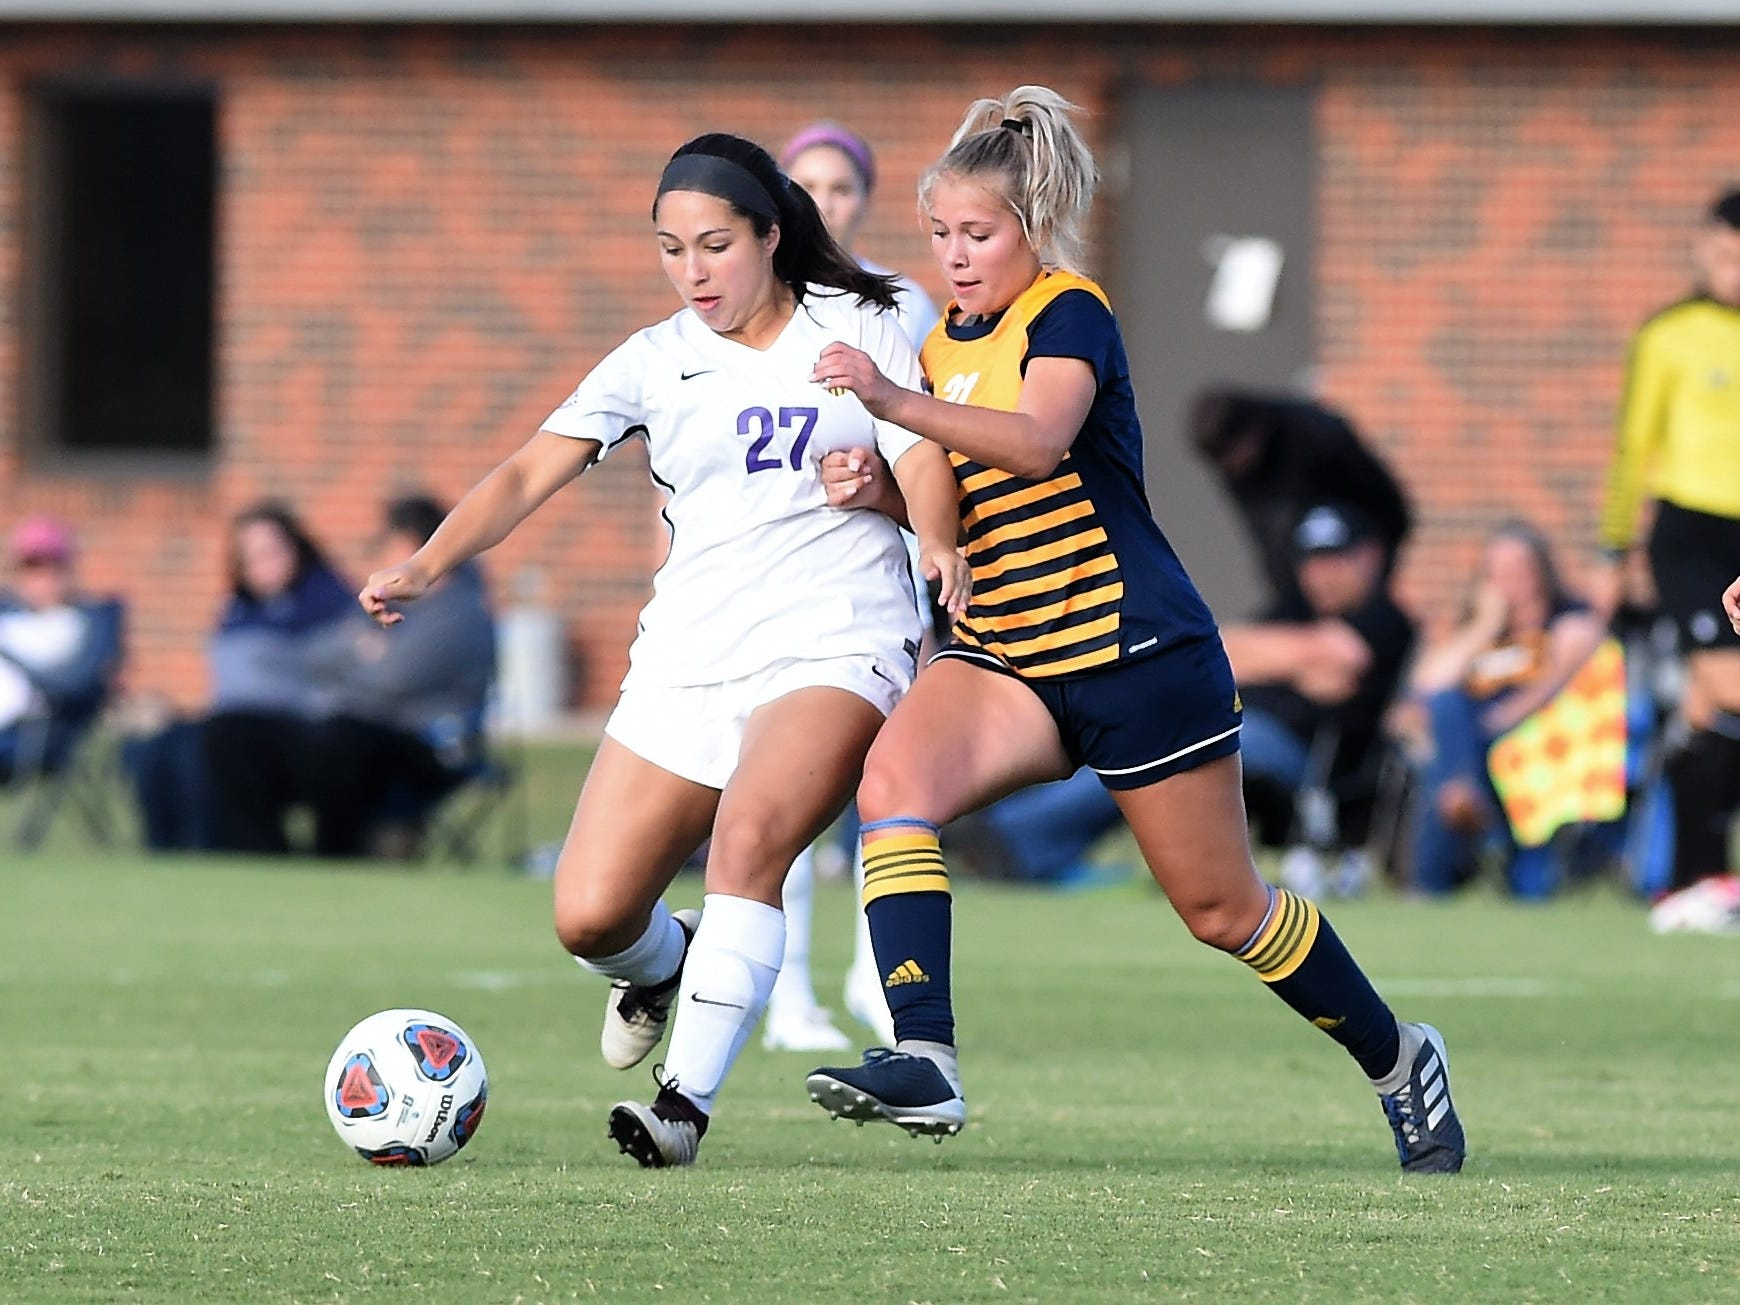 Hardin-Simmons midfielder Elly Green (27) passes with a Howard Payne defender on her back at the HSU Soccer Complex on Thursday, Oct. 11, 2018. The Cowgirls won 4-1.